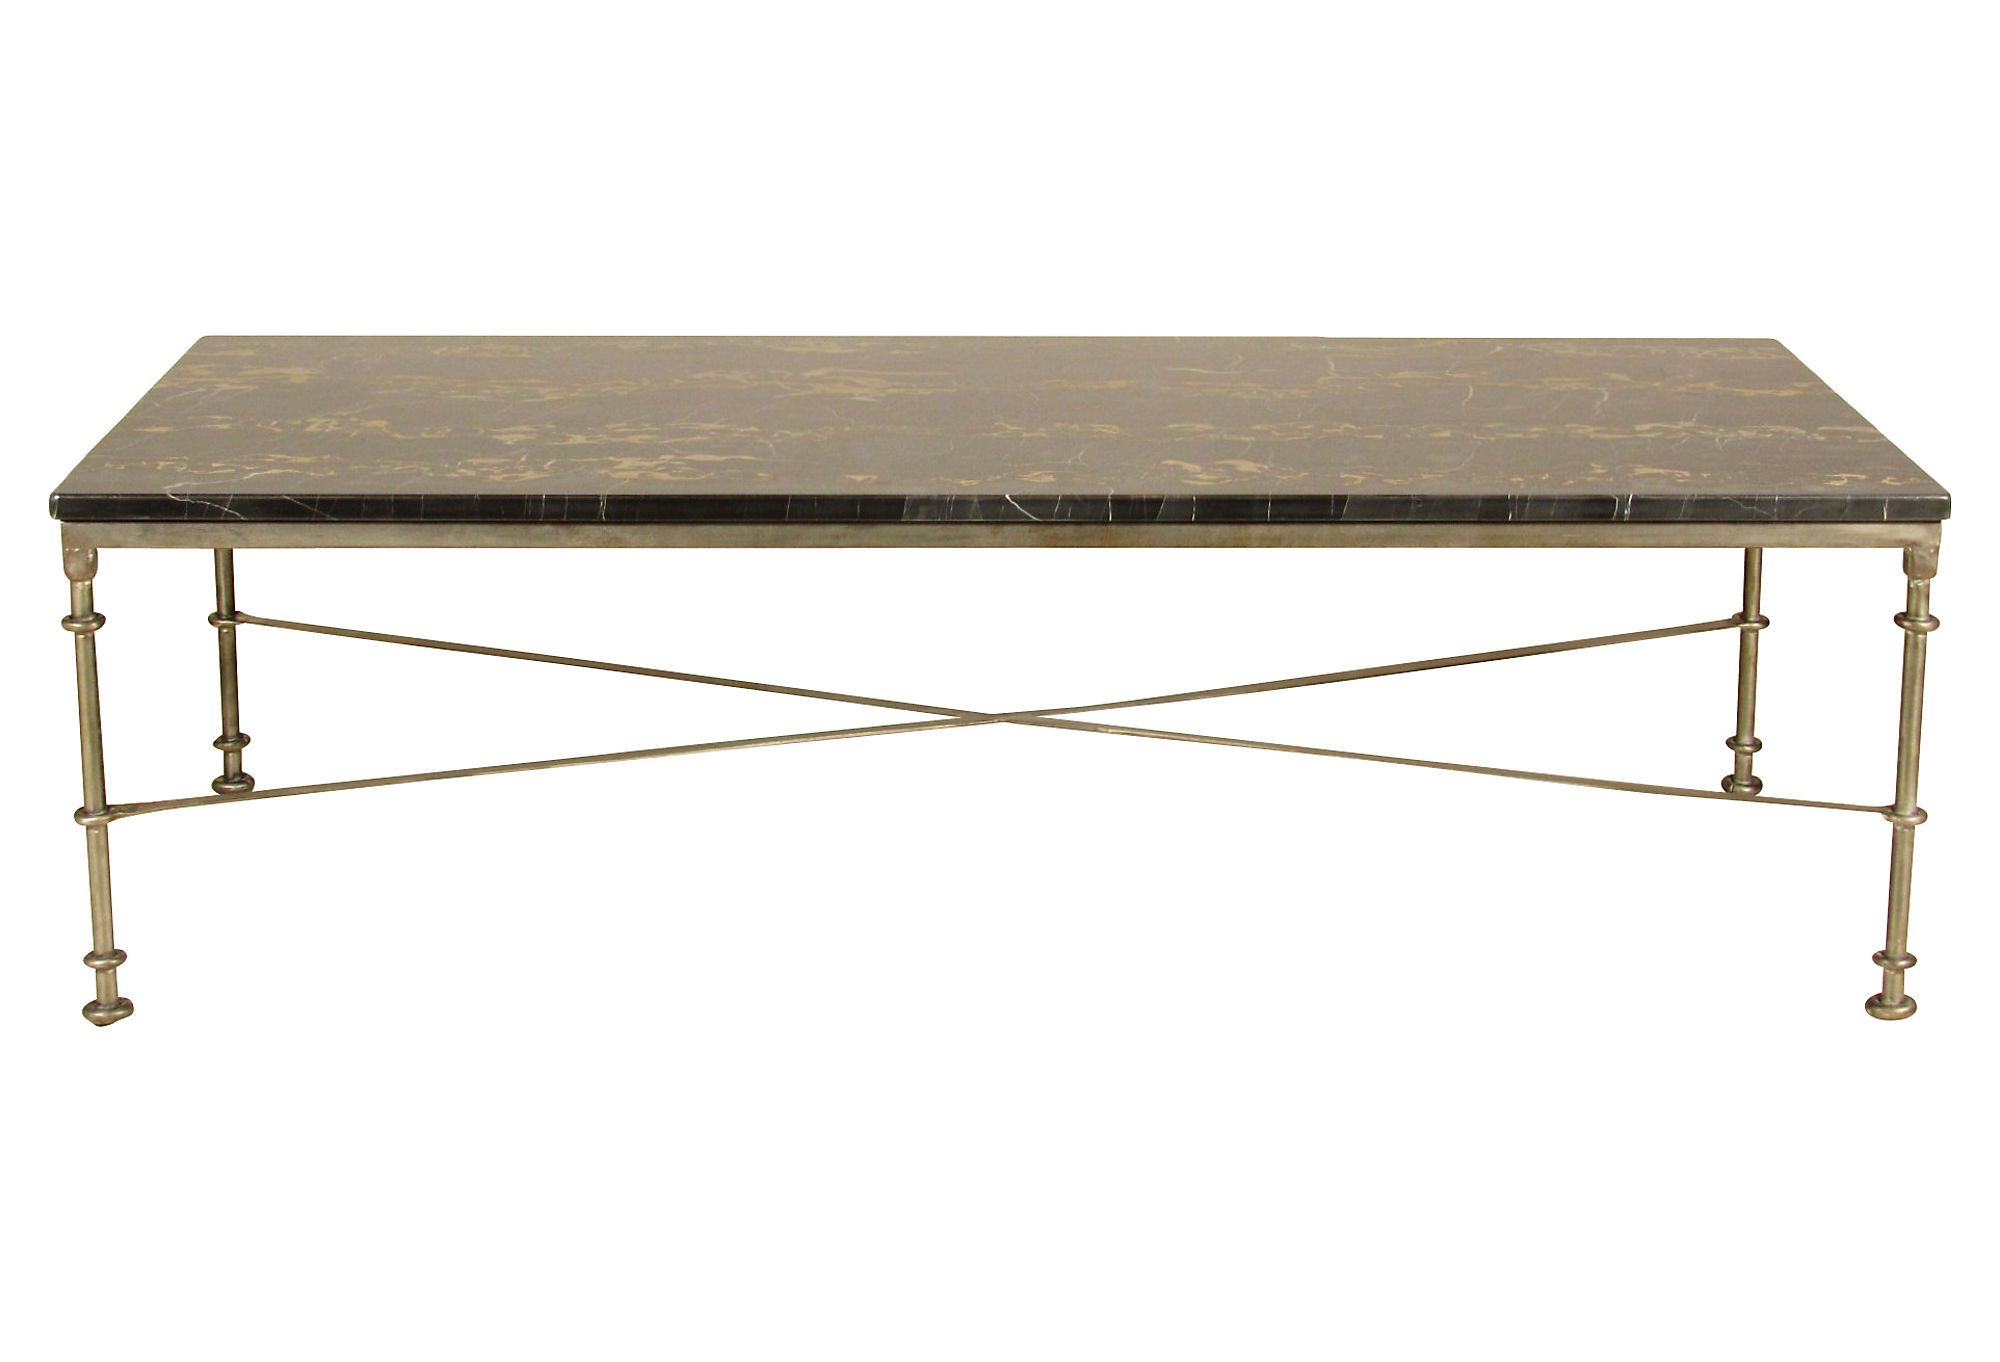 Estelle Artisanal Vintage Coffee Table by Pottery Barn